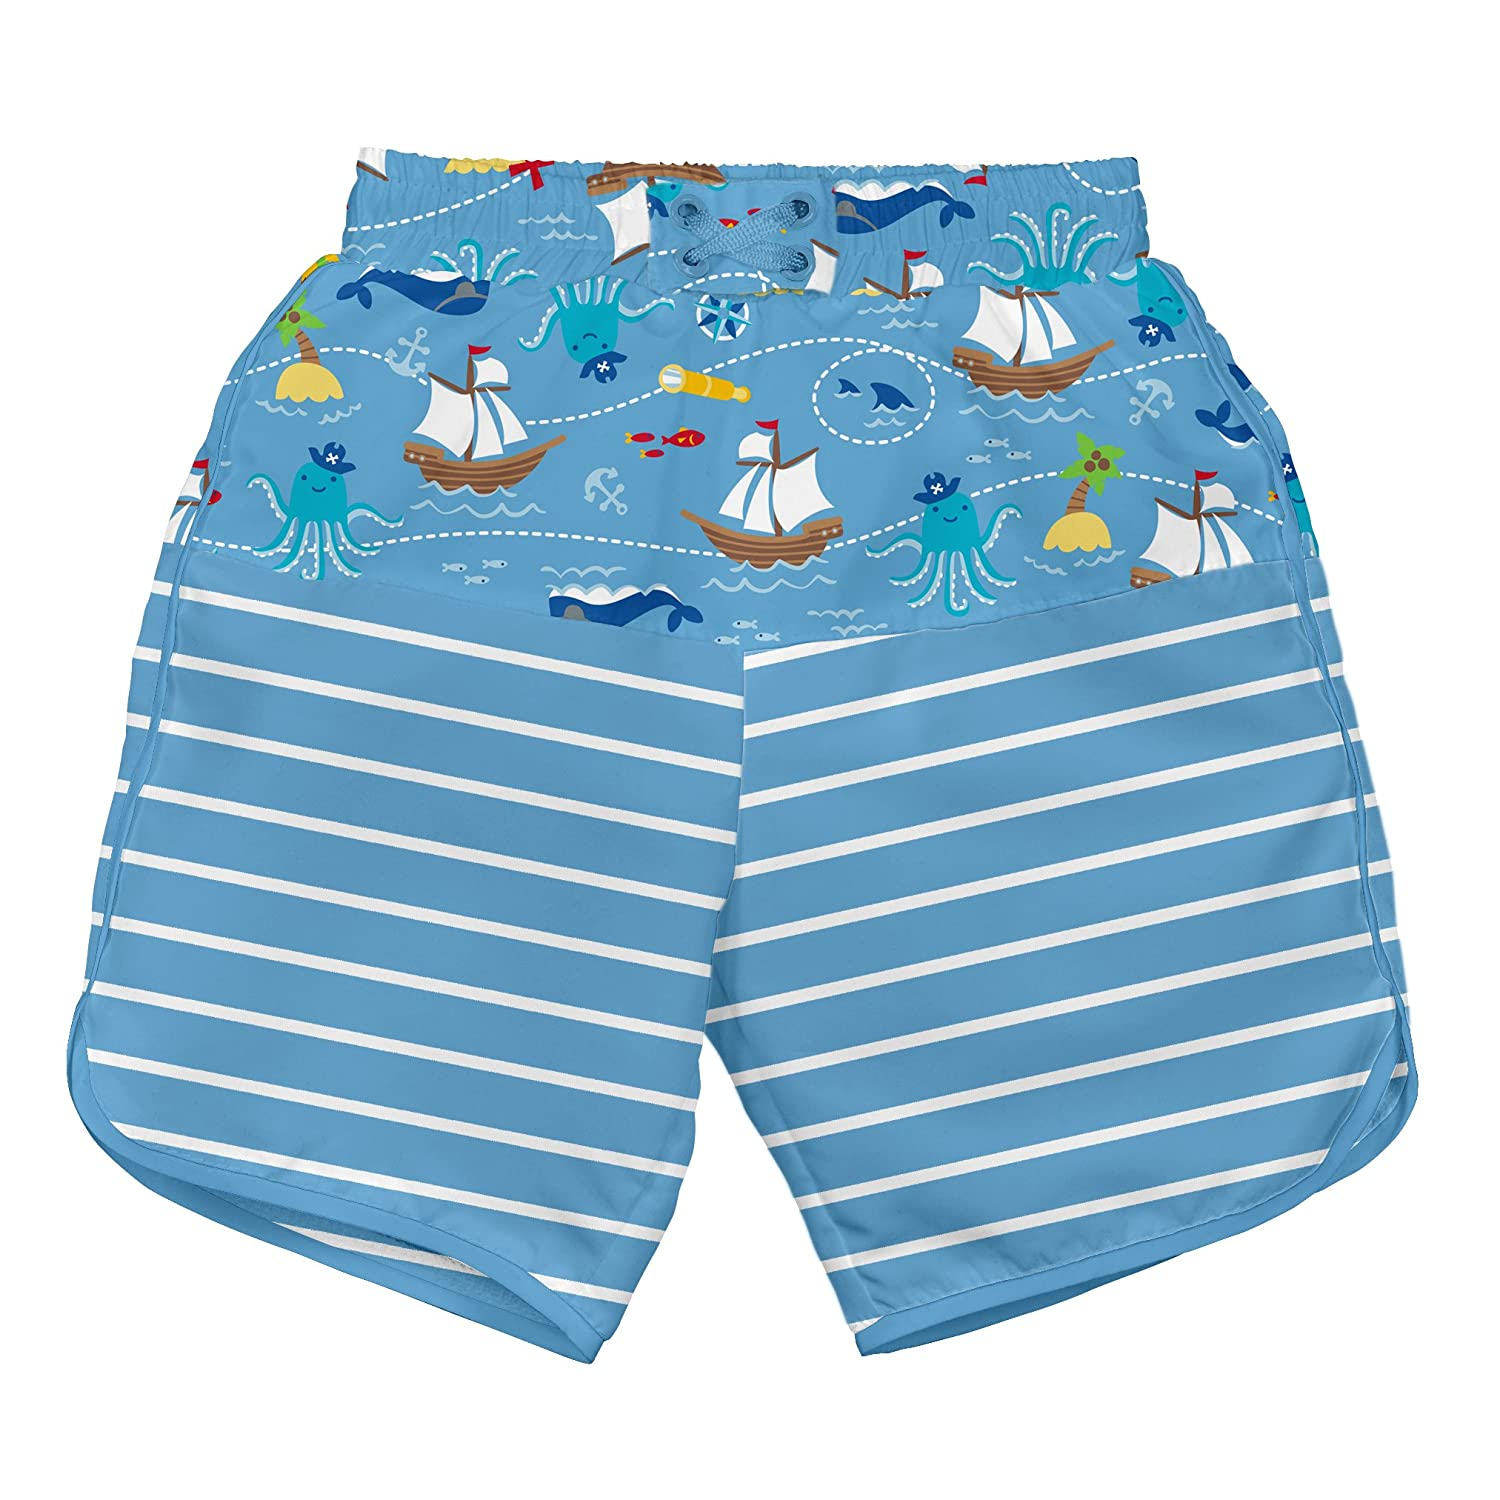 i play. Baby Boys' Board Shorts with Built-in Reusable Absorbent Swim Diaper i play Children's Apparel